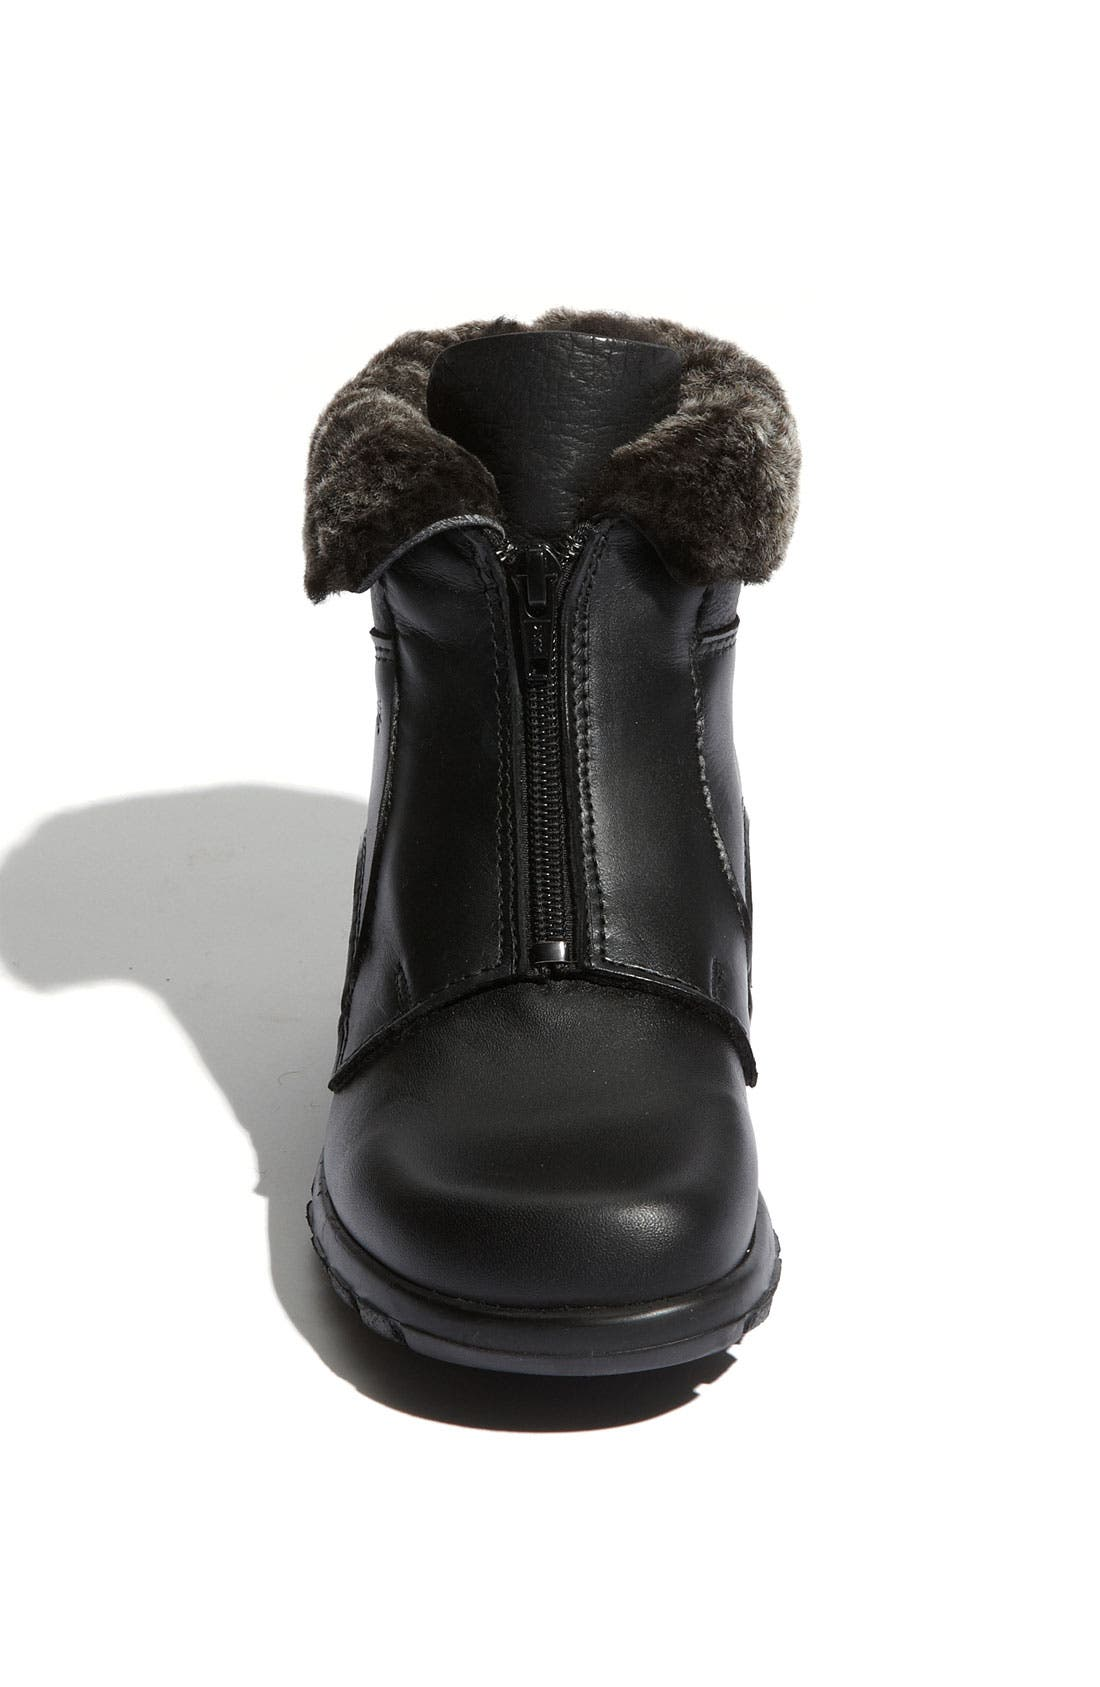 MARTINO,                             'Puppy' Waterproof Boot,                             Alternate thumbnail 3, color,                             001